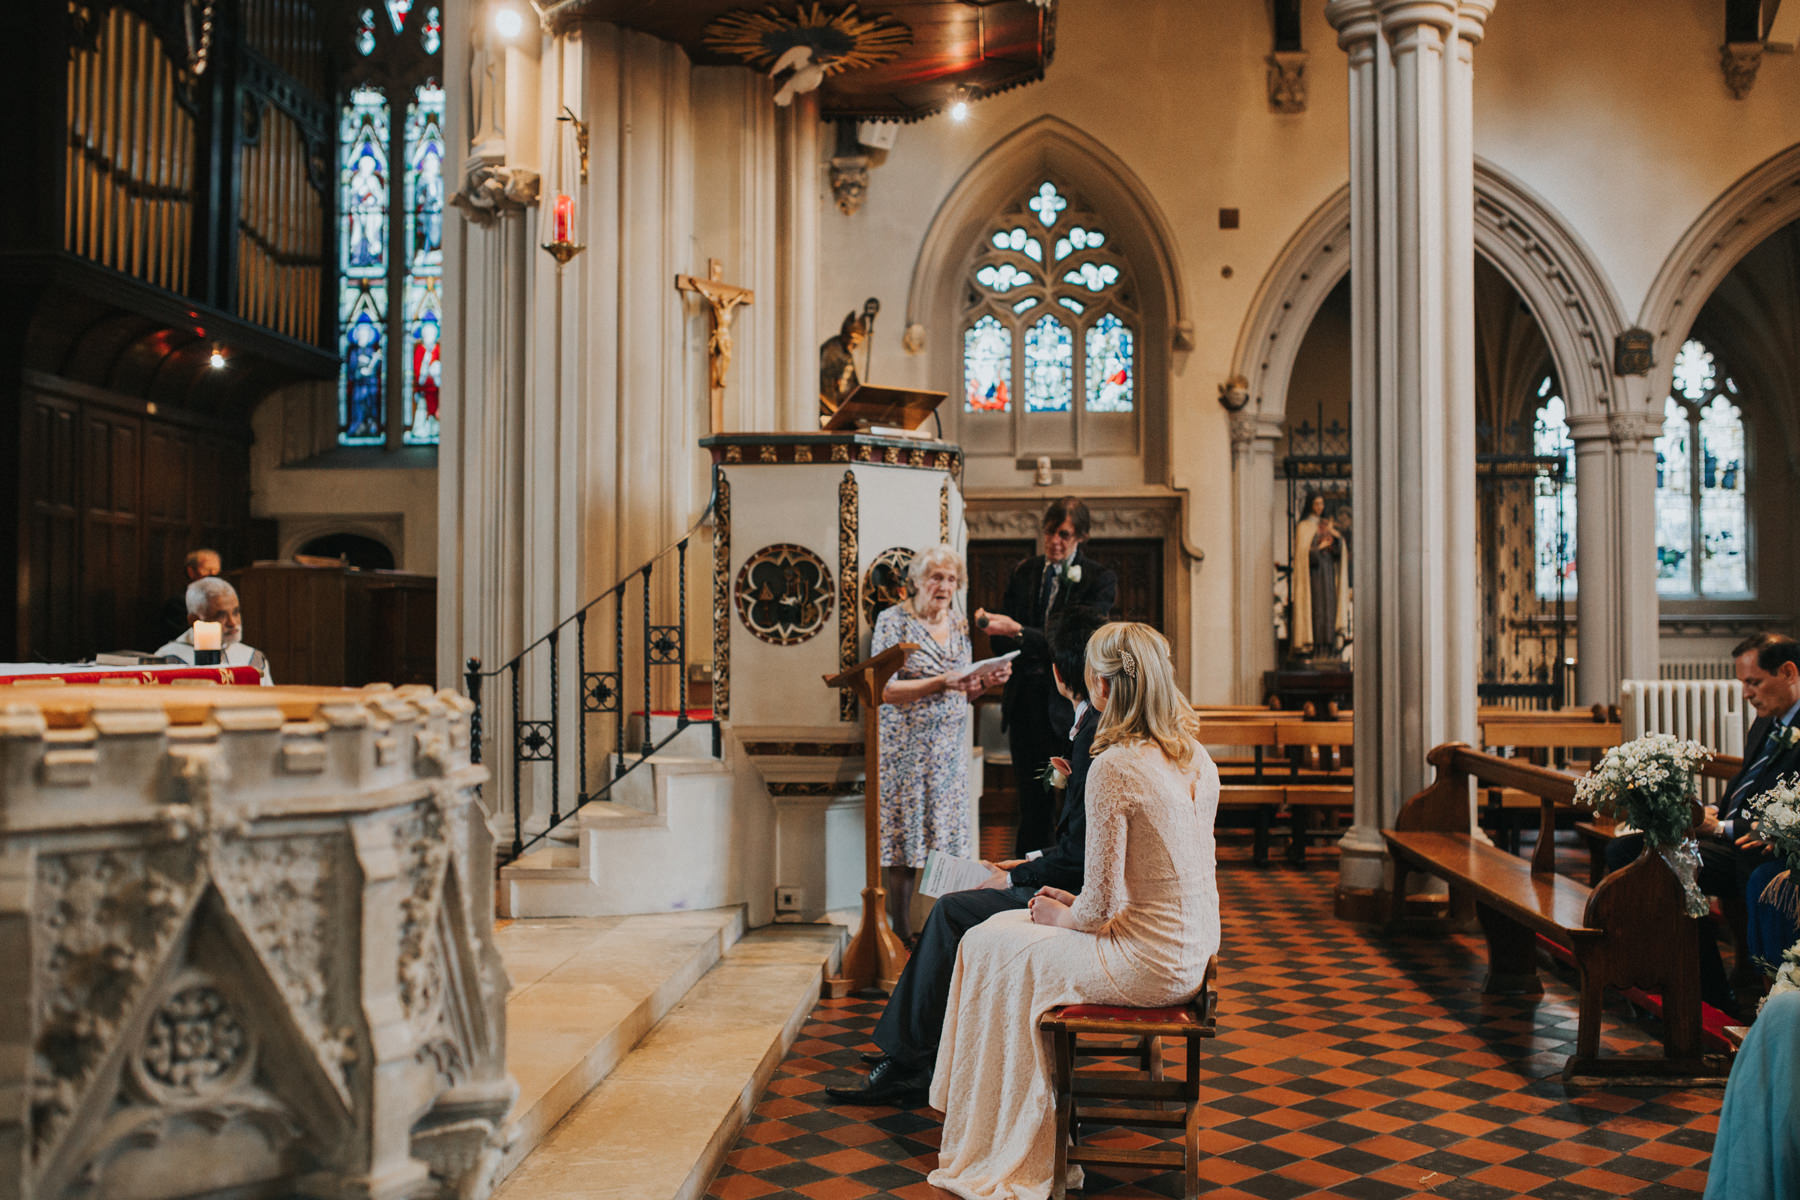 LD-194-London-wedding-grandma-reading-during-ceremony.jpg